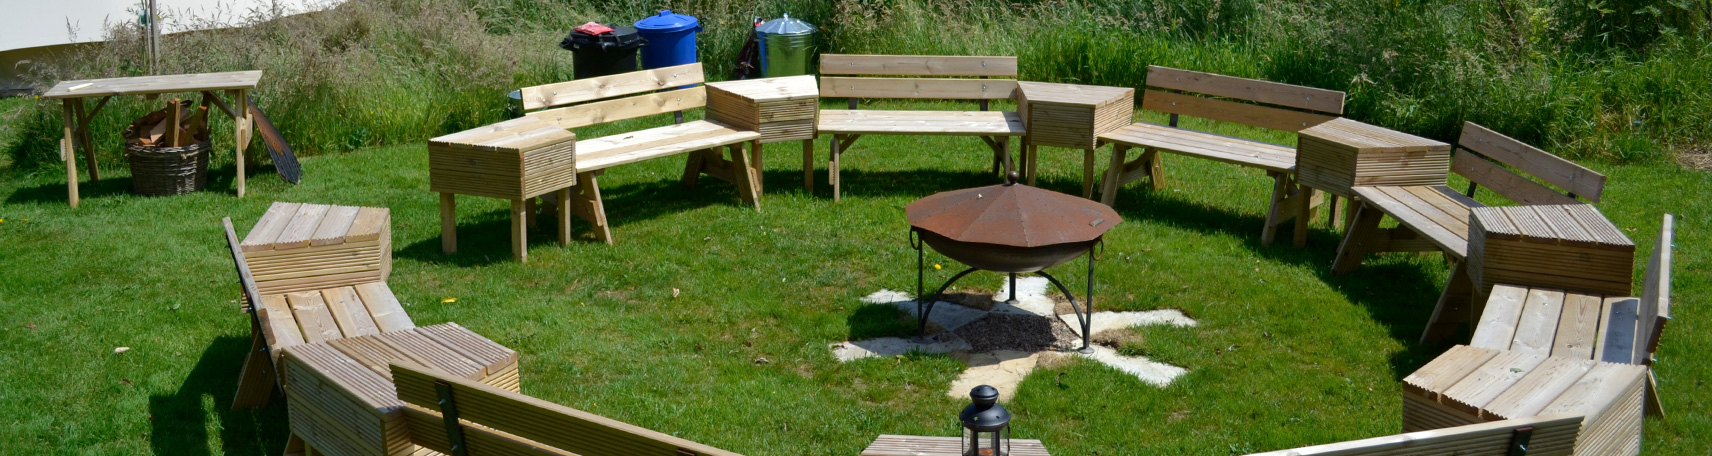 Wooden Bench seating area at a Hen Camp